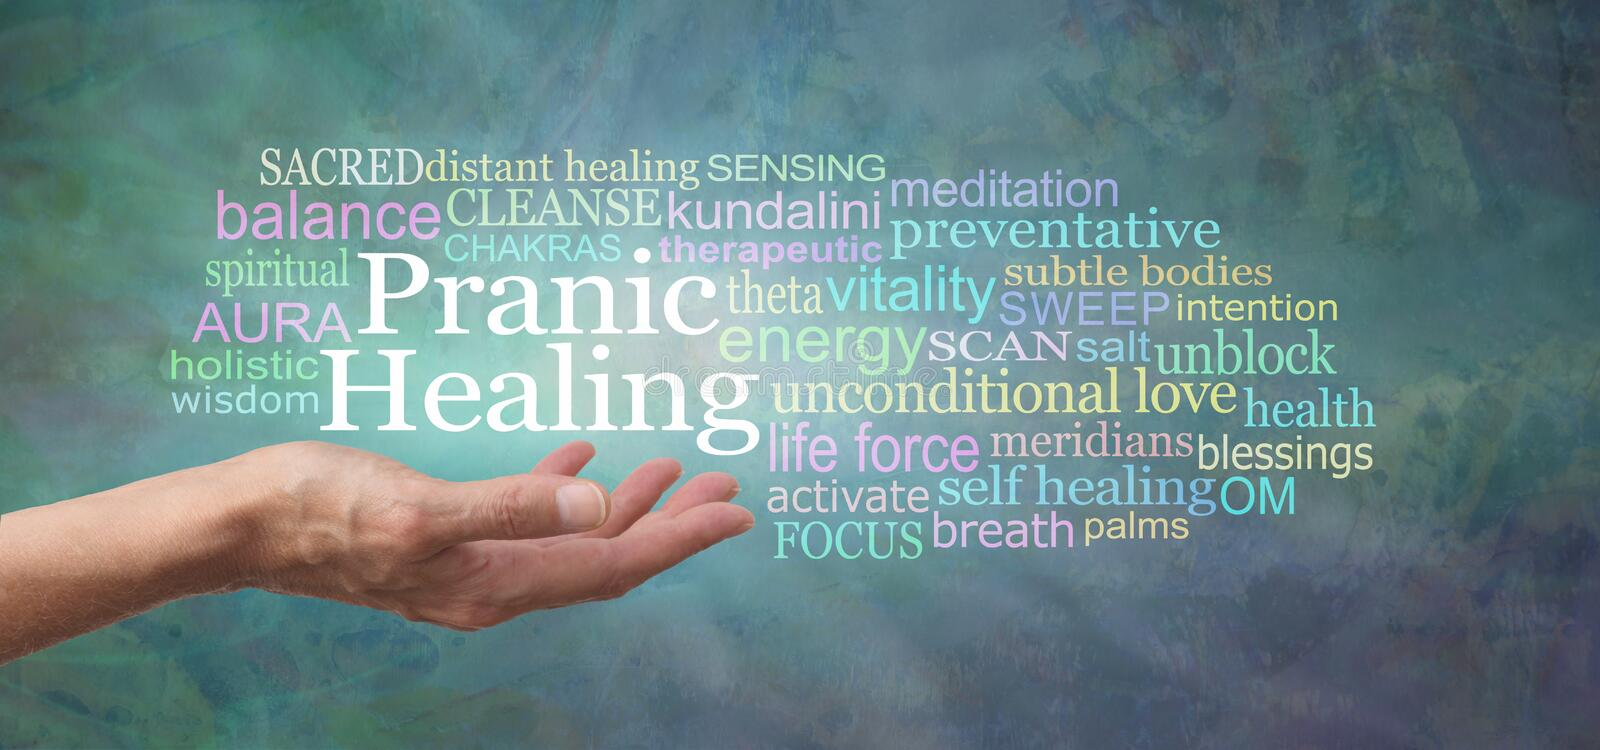 Your body is designed to self heal - try Pranic Healing. Female hand with open palm and the words PRANIC HEALING above surrounded by a relevant word cloud on a stock image